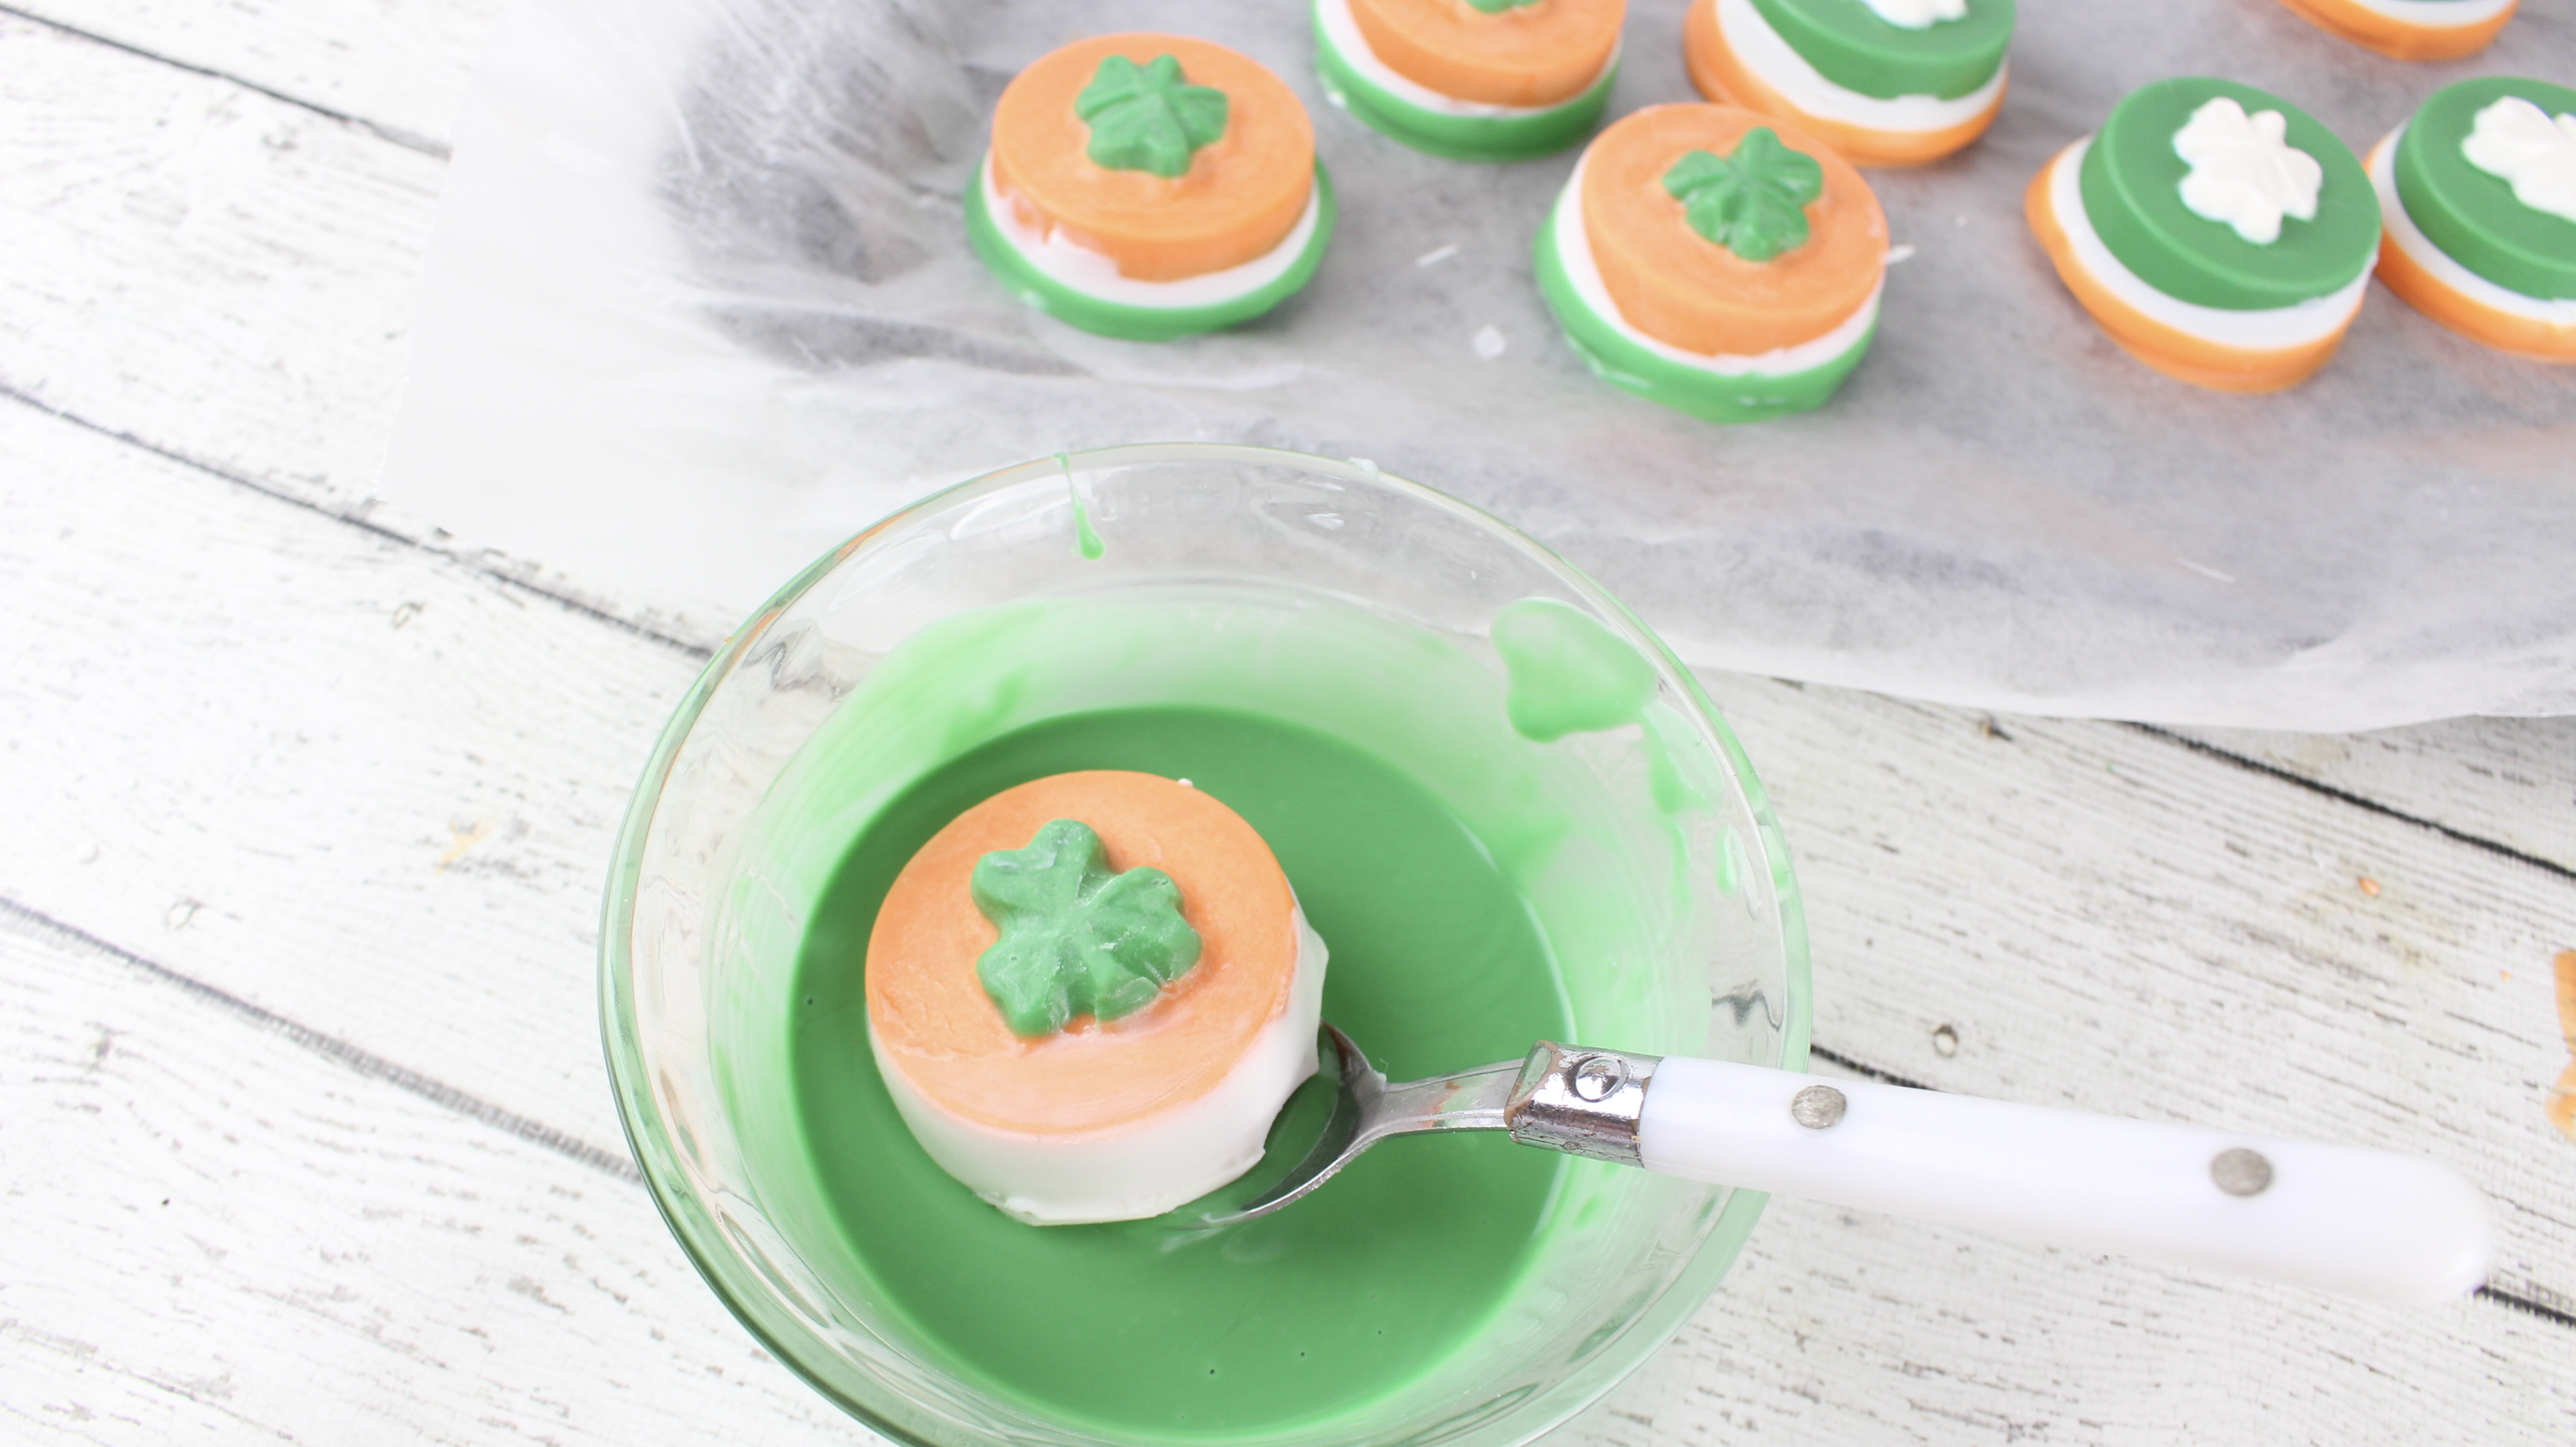 Want to make delicious St. Patrick's Day cookies? These shamrock cookies are made using Oreos and candy melts. Perfect for celebrating St. Patrick's Day.